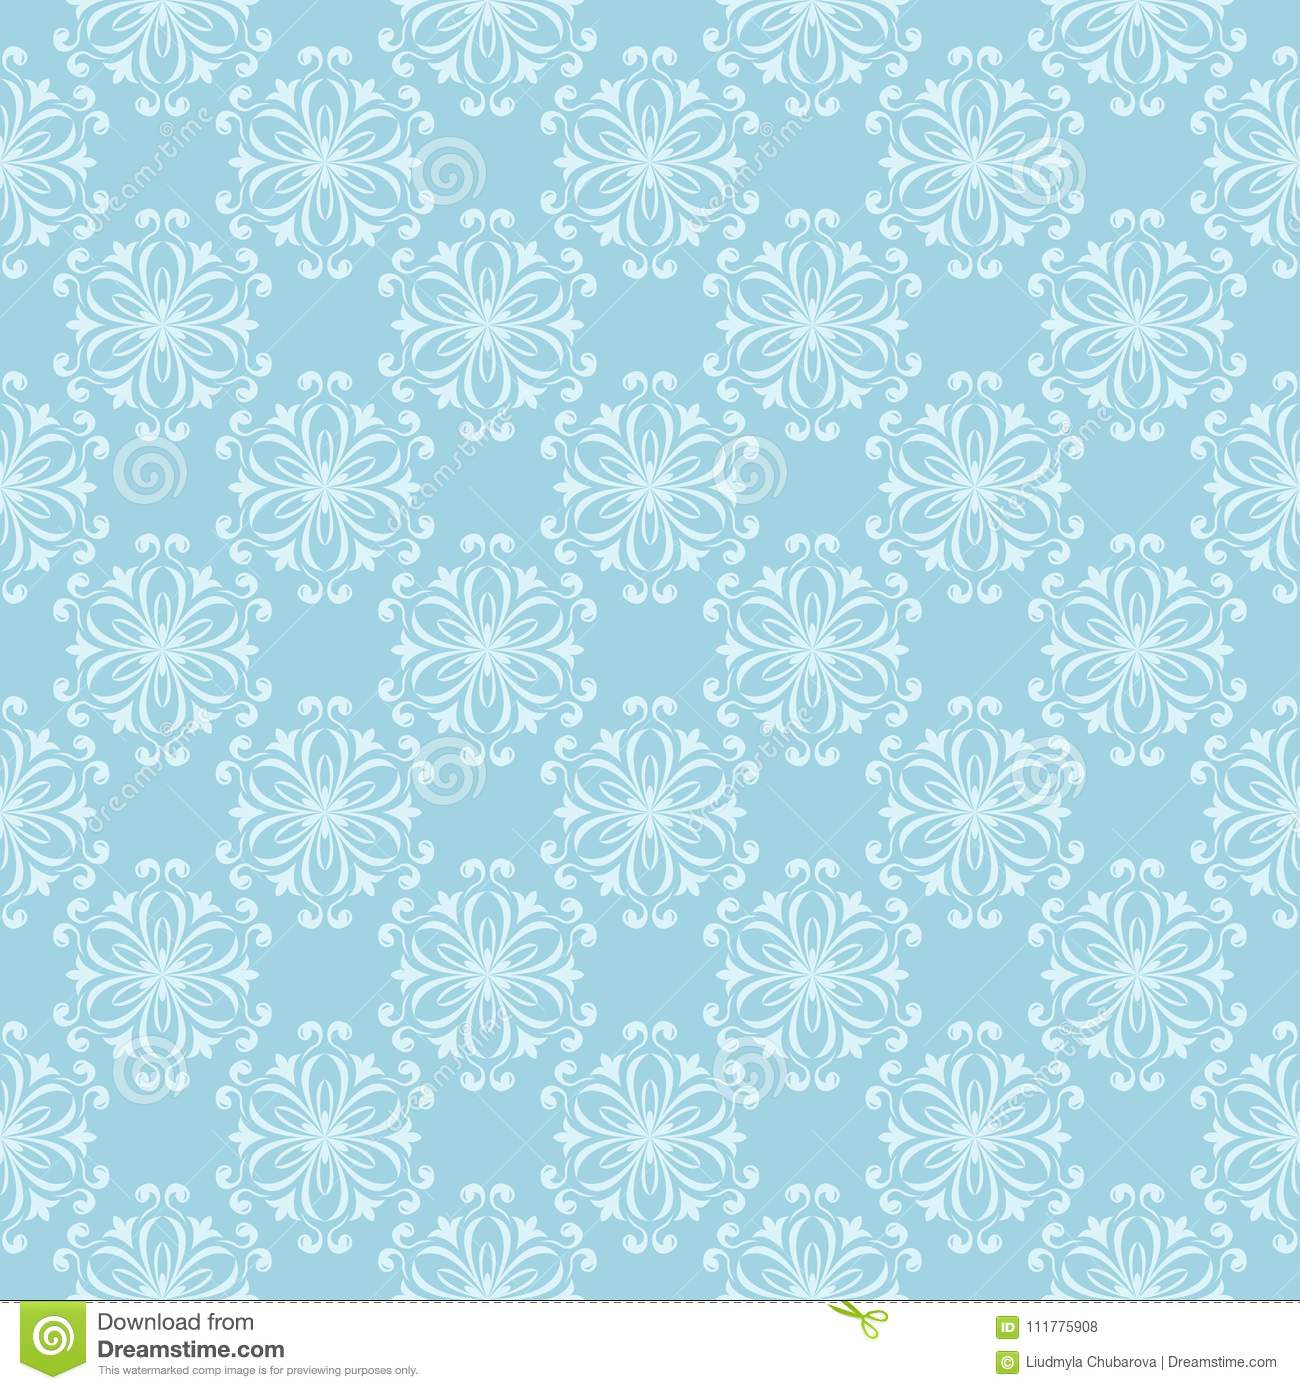 White floral seamless design on blue background